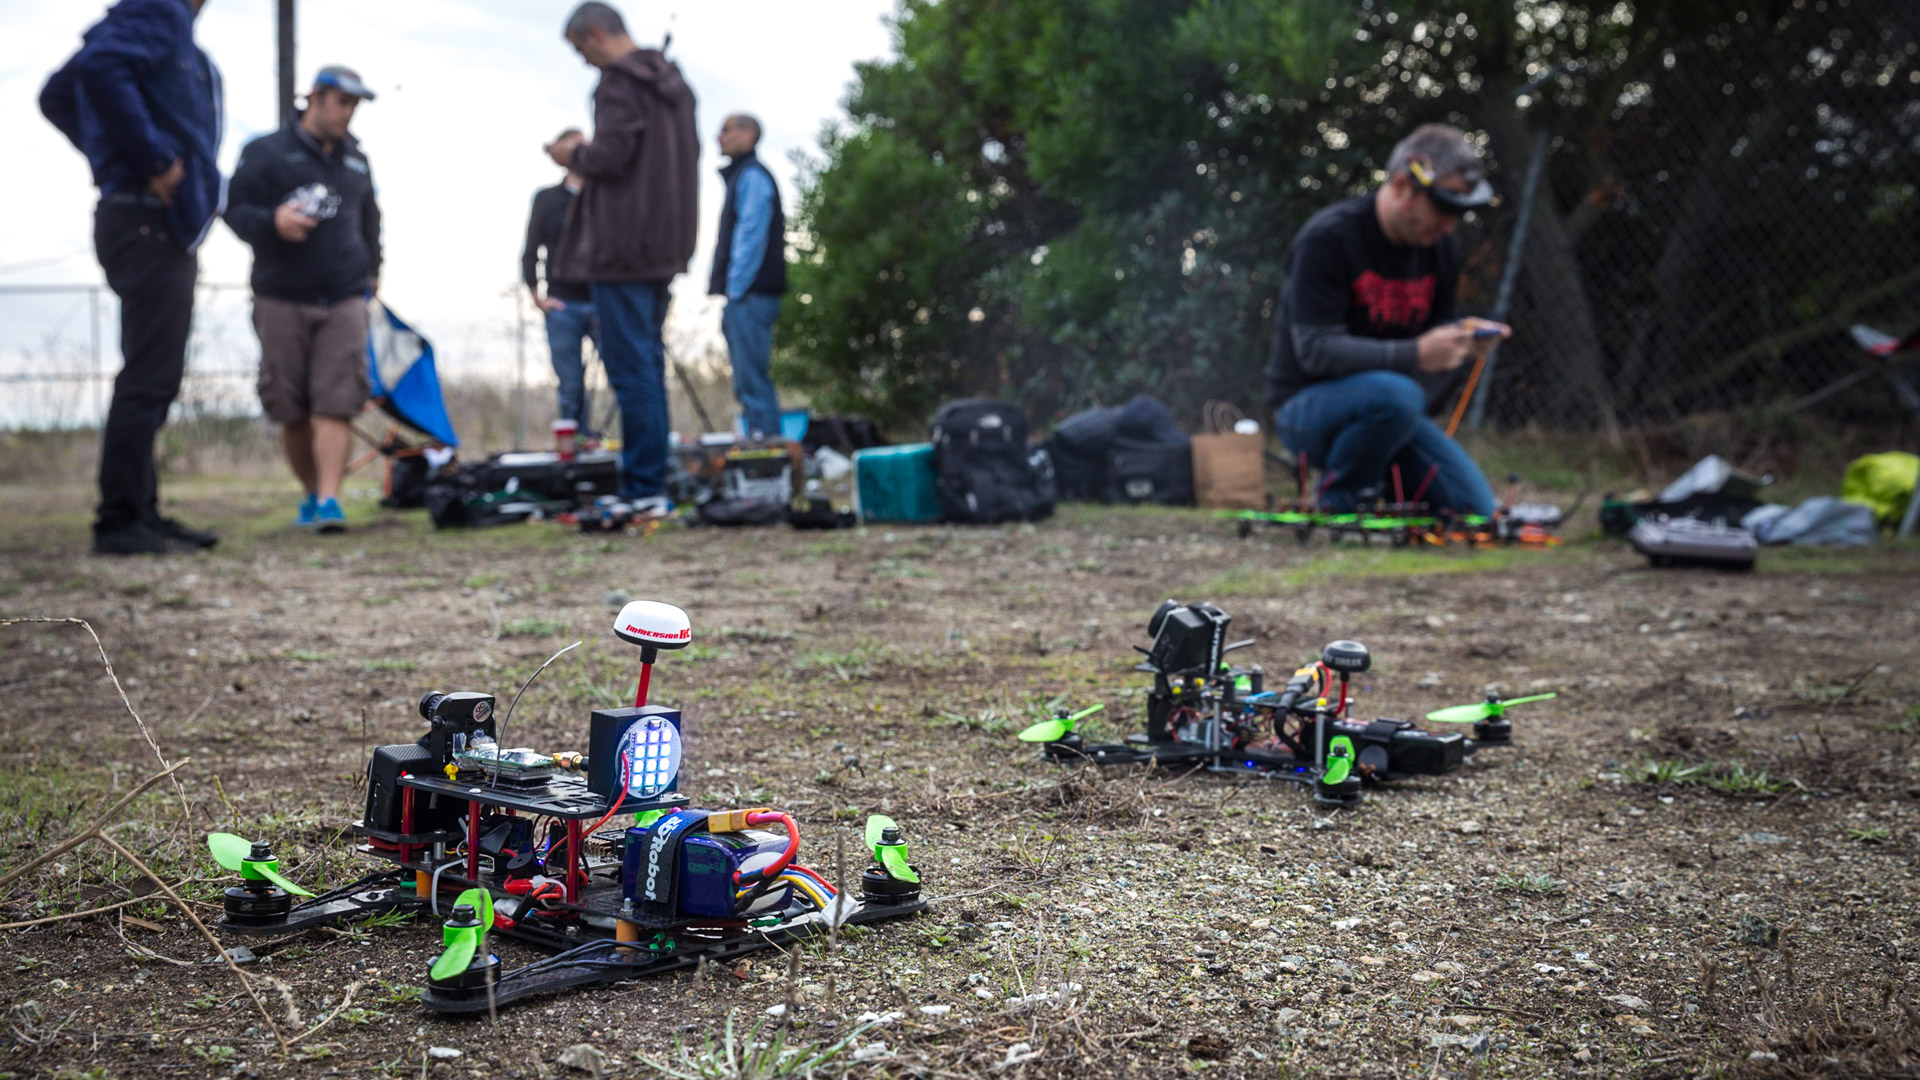 What you should know about getting an fcc license for flying fpv what you should know about getting an fcc license for flying fpv xflitez Image collections